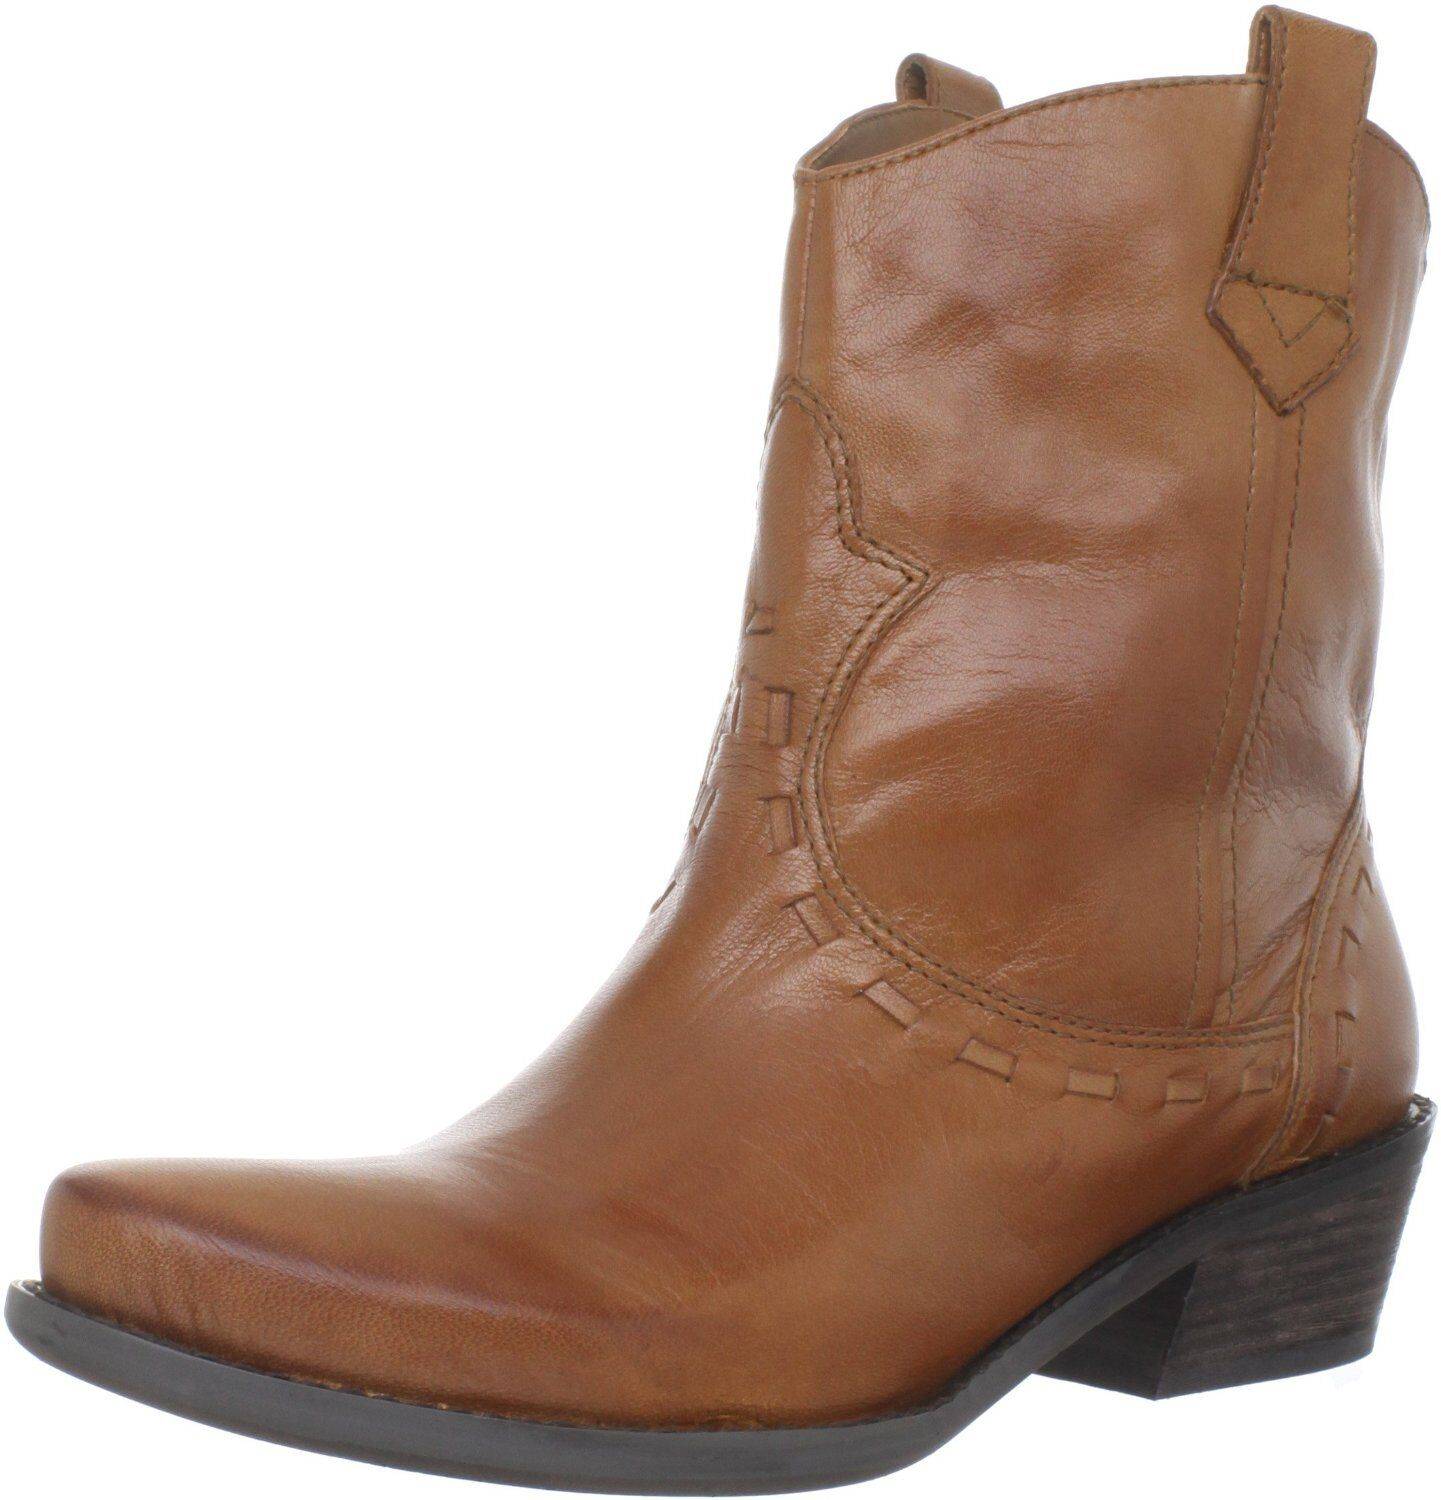 NEW FRANCO SARTO Window 2 Cuoio Leather Rider ANKLE Western BOOTS Womens 6 NIB